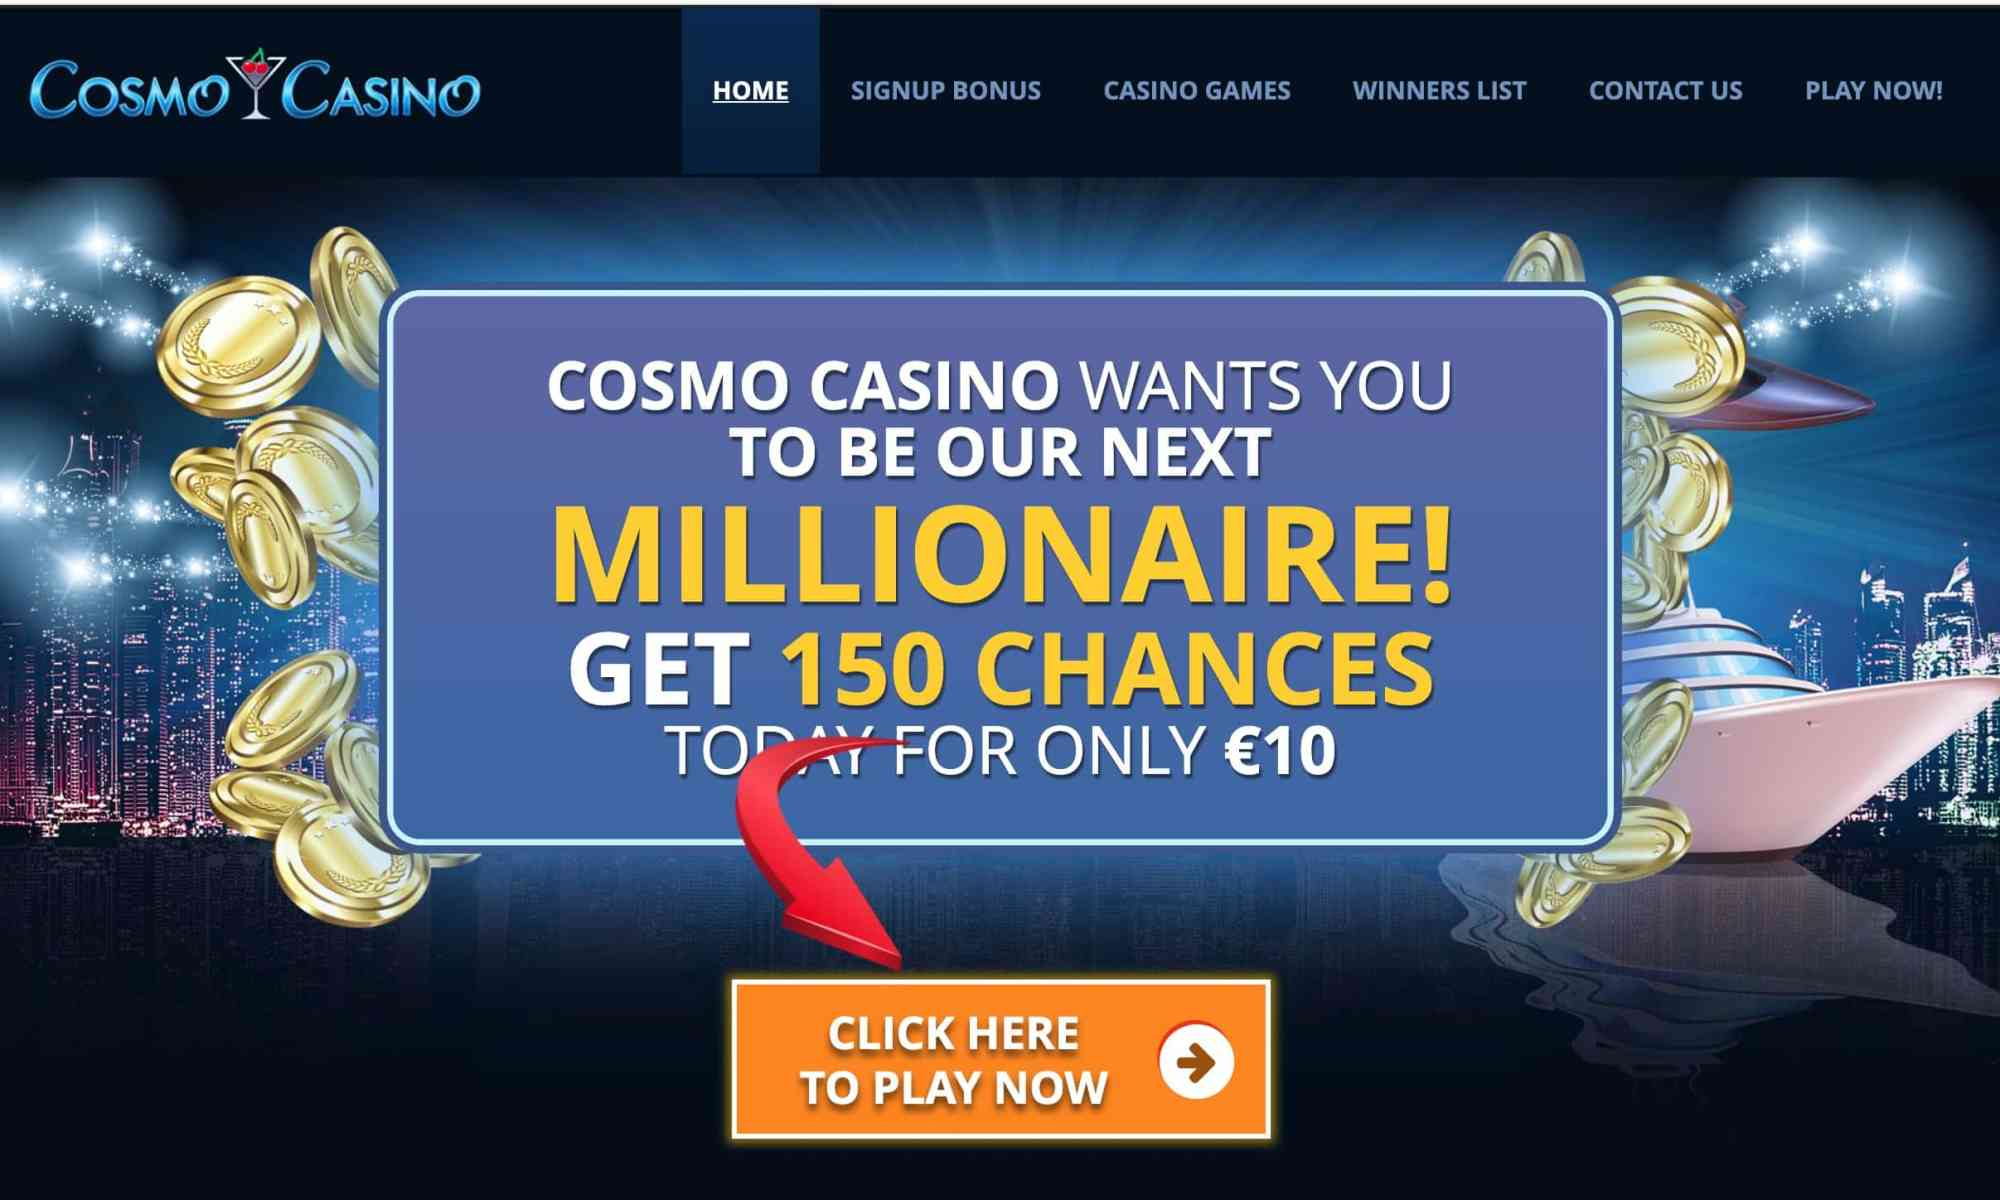 Cosmo Casino: welcome reward 150 chances to be a millionaire